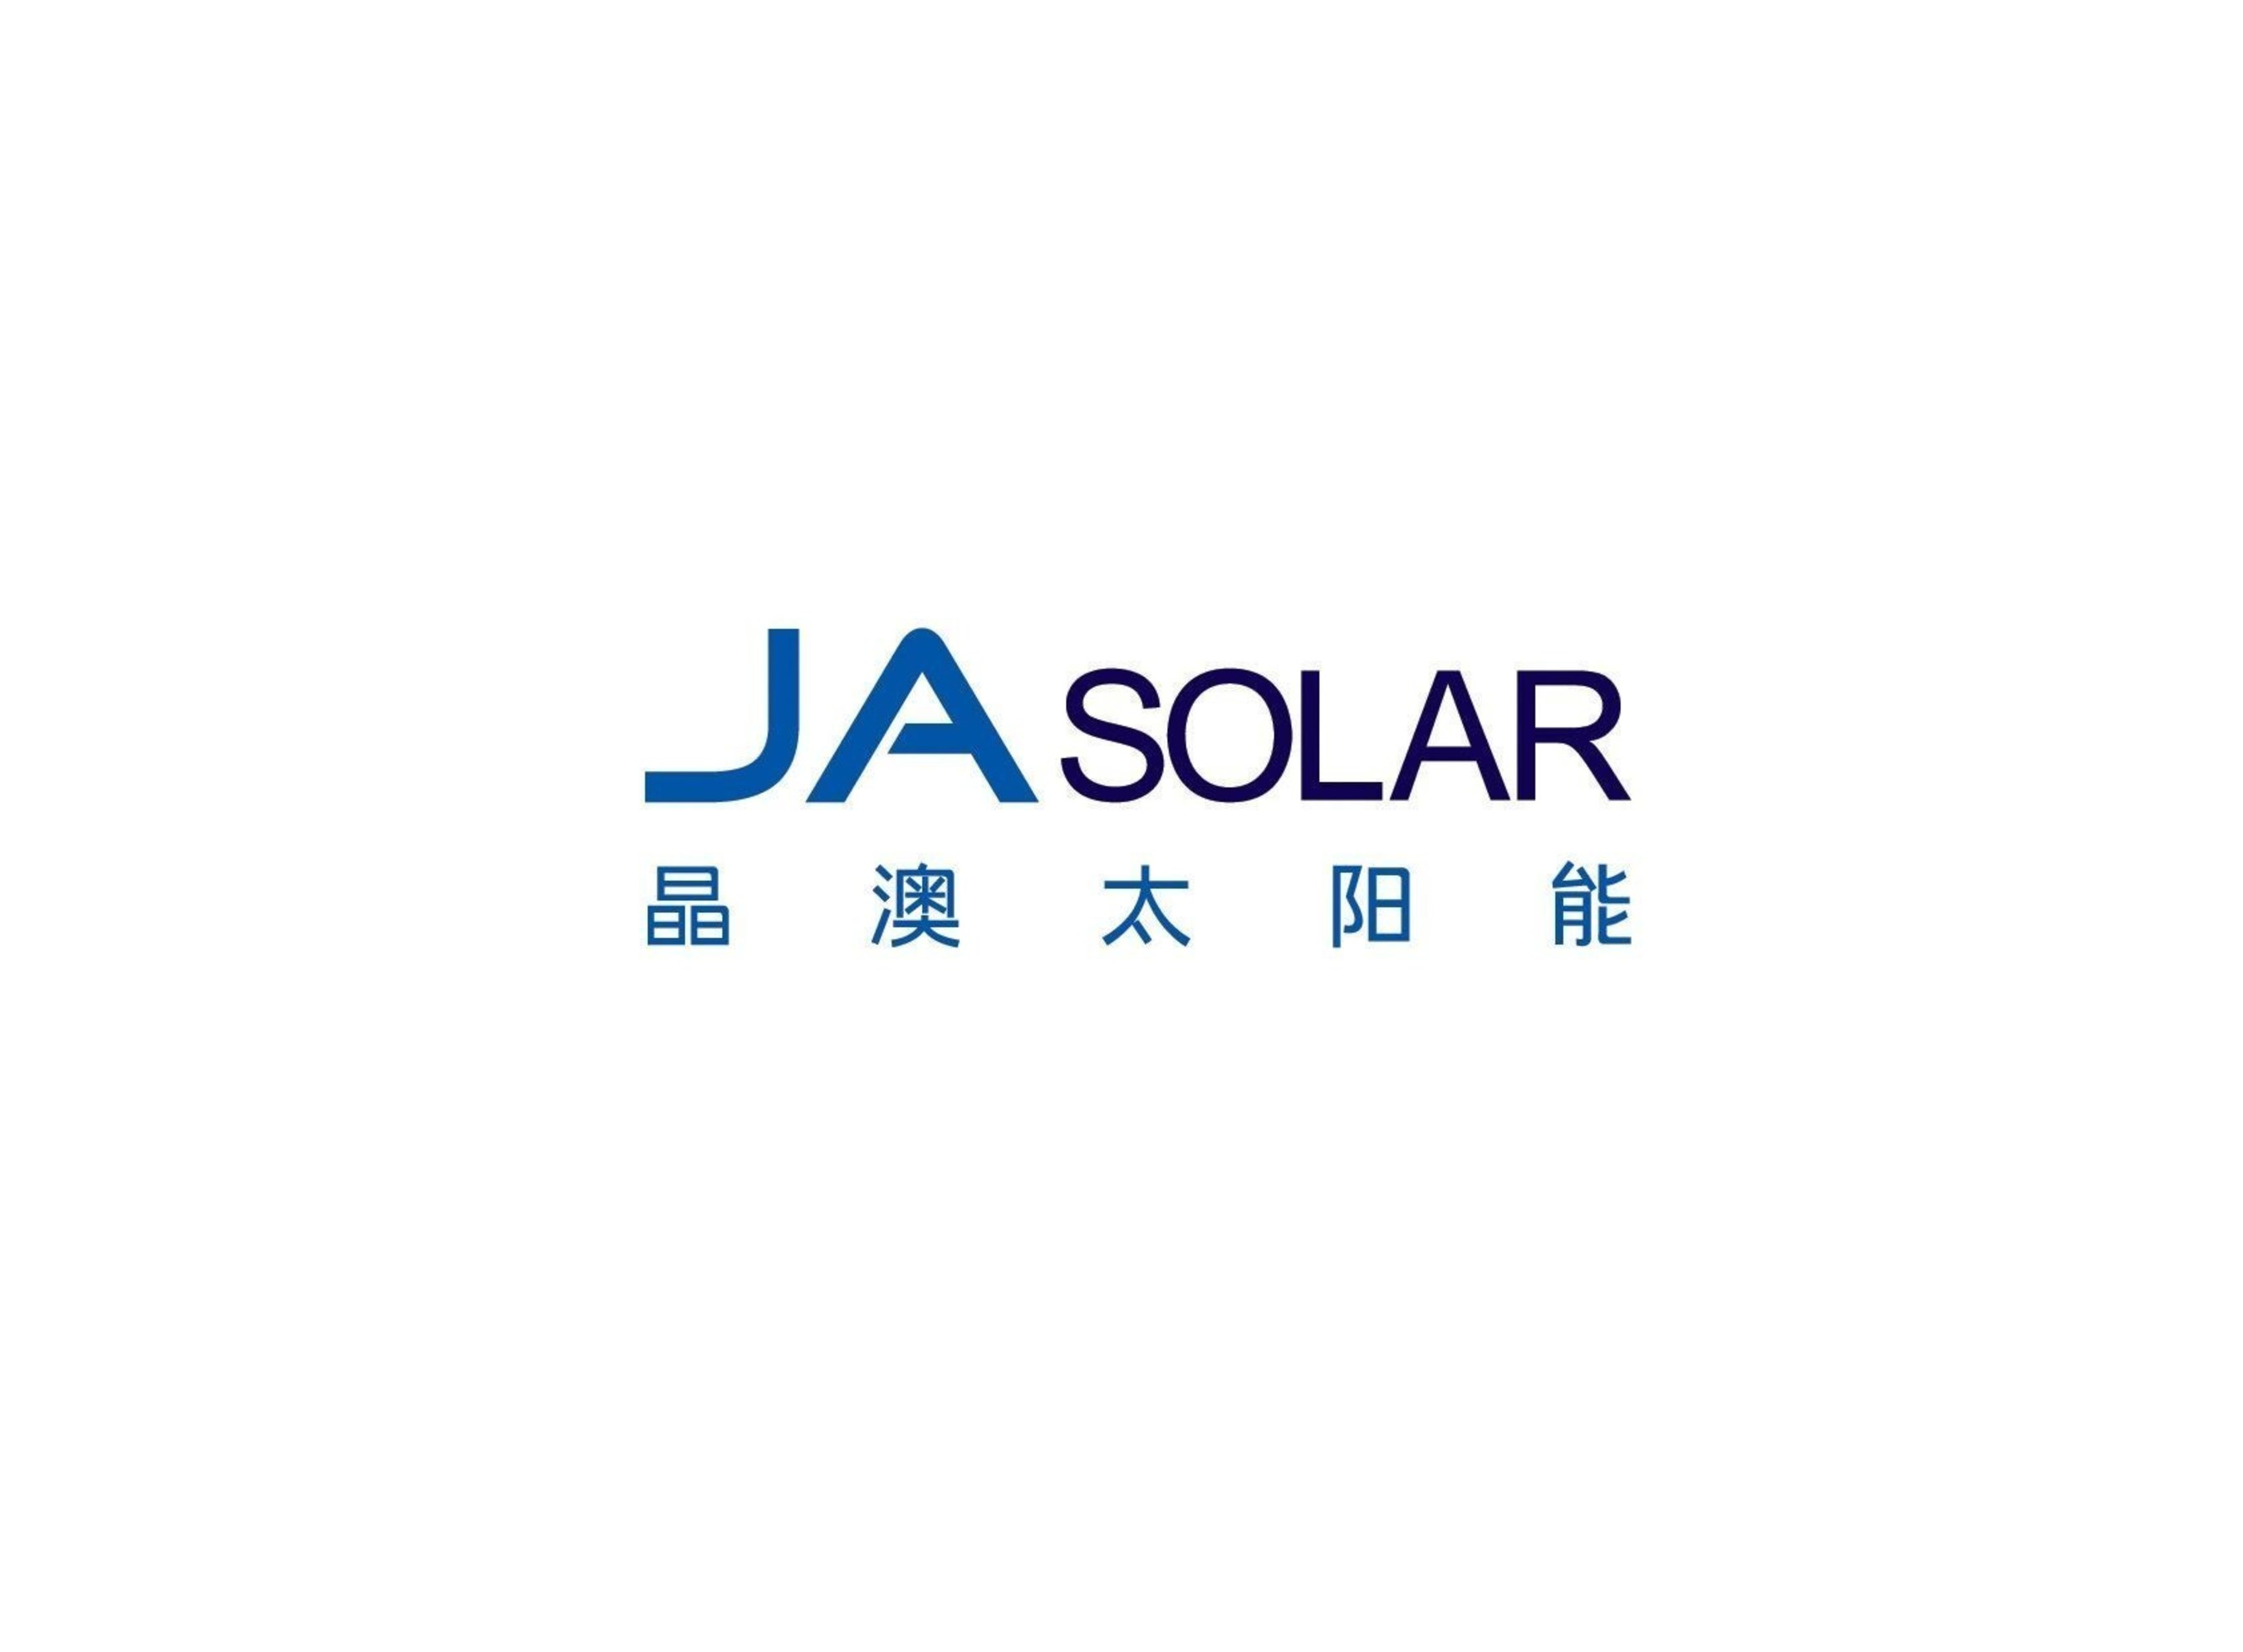 JA Solar Achieves New Class A Fire Rating Test in Accordance With UL1703 for Type-1 Modules